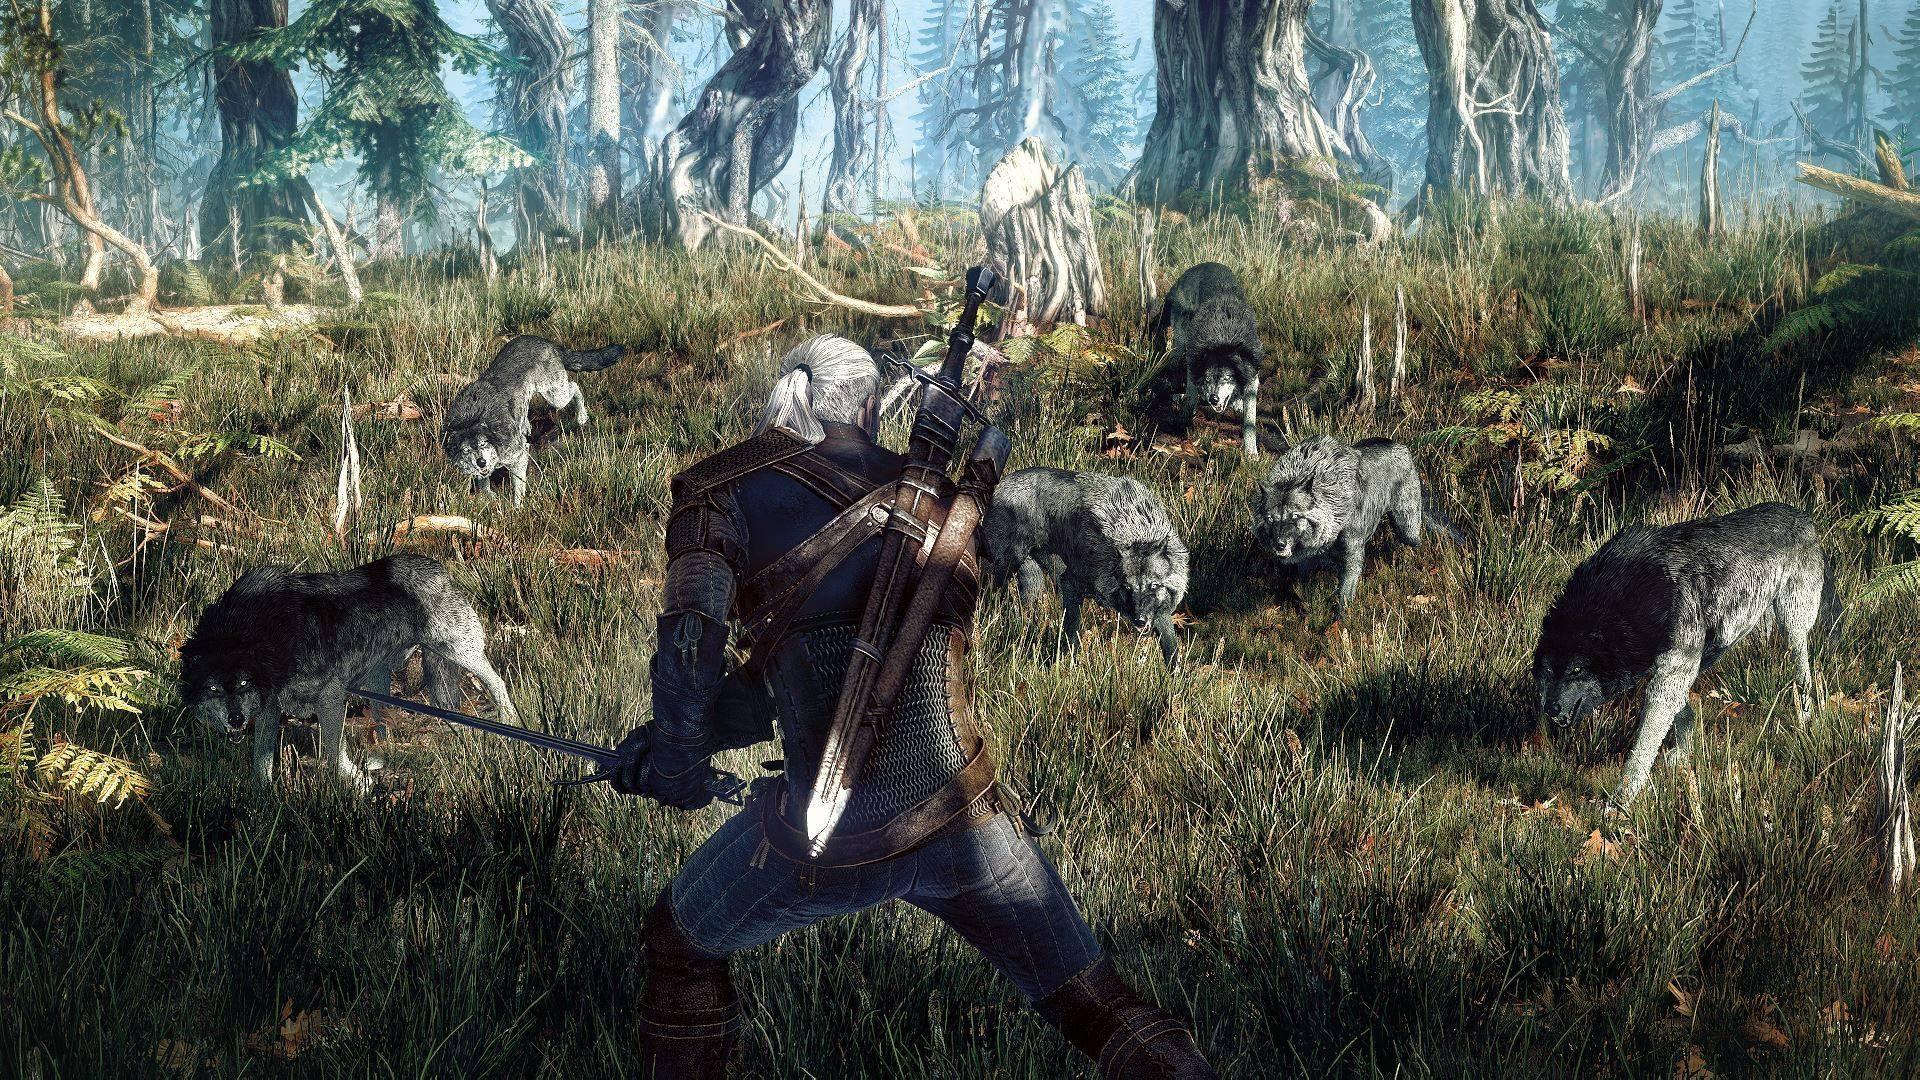 The Witcher 3: Wild Hunt Wallpapers, Pictures, Images